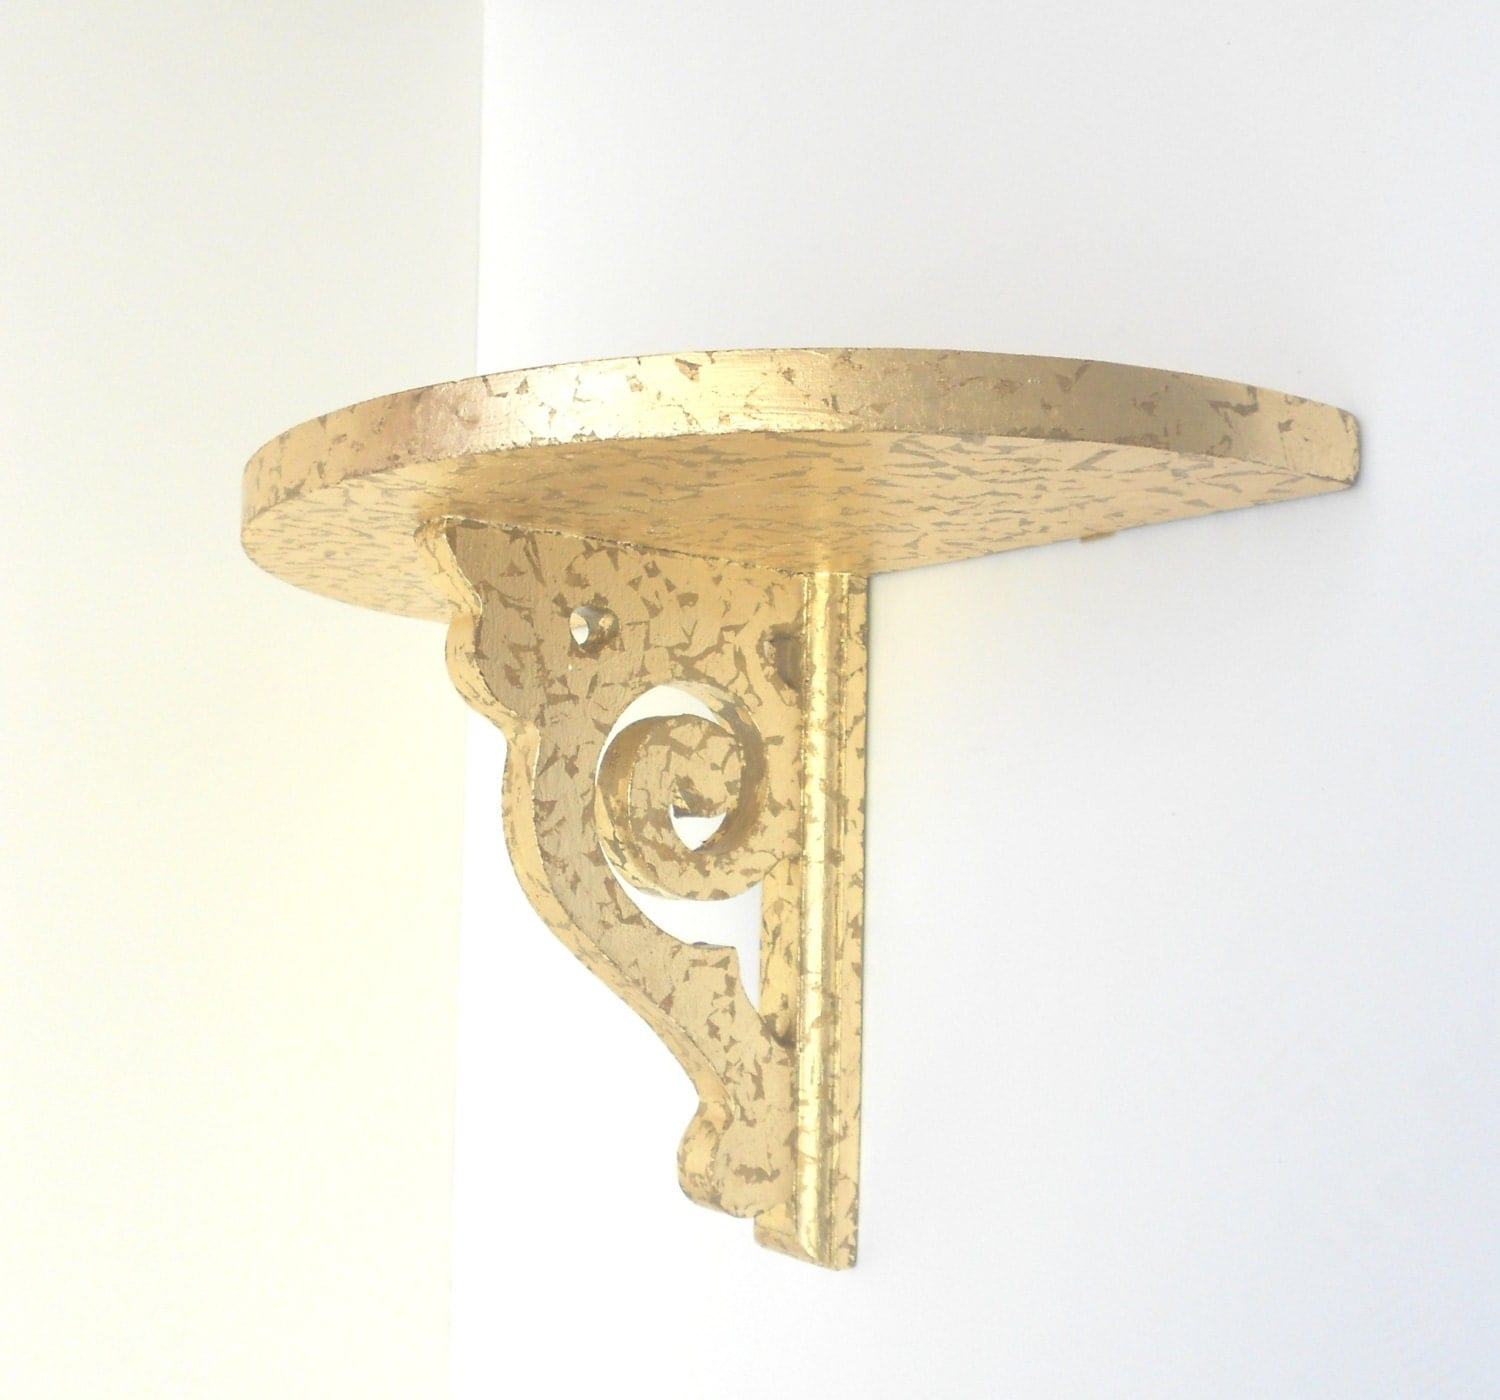 Wall sconce shelf 28 images shelf sconcegold leaf decorative wall sconce by goldleafgirl - Decorative wall sconce ...